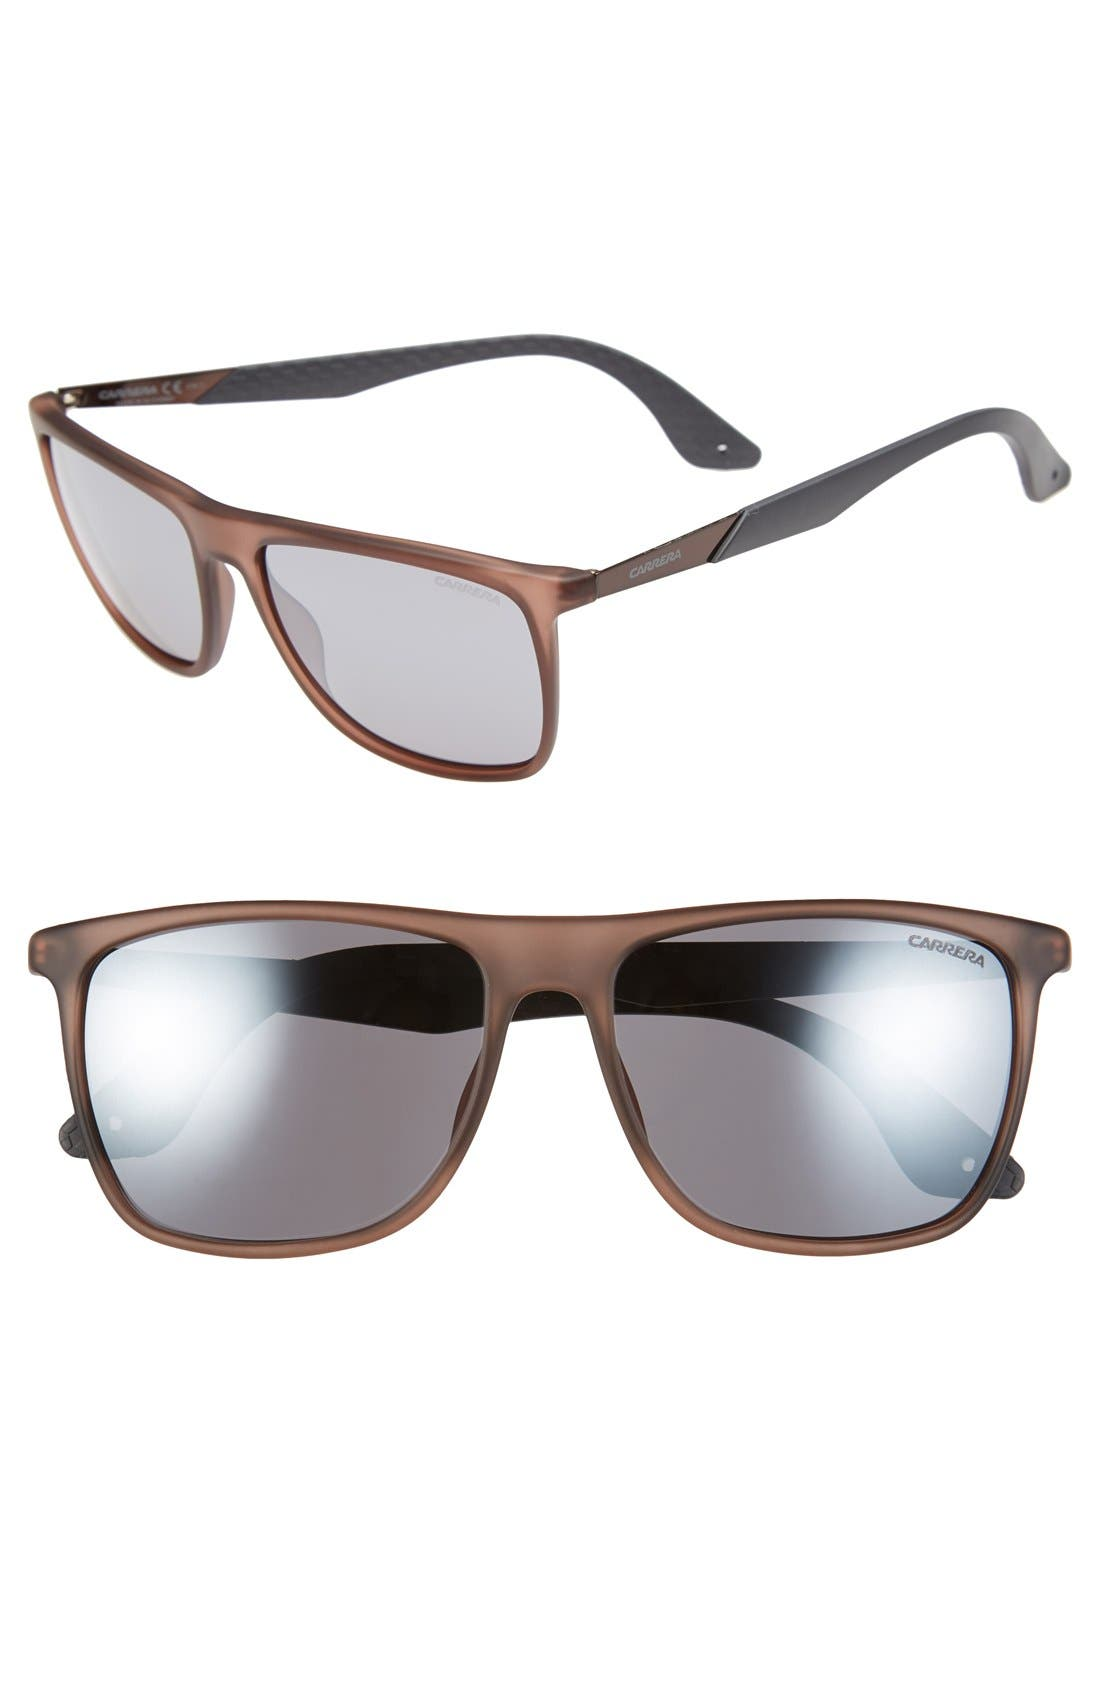 56mm Retro Sunglasses,                             Main thumbnail 1, color,                             MATTE BROWN/ GREY FLASH MIRROR